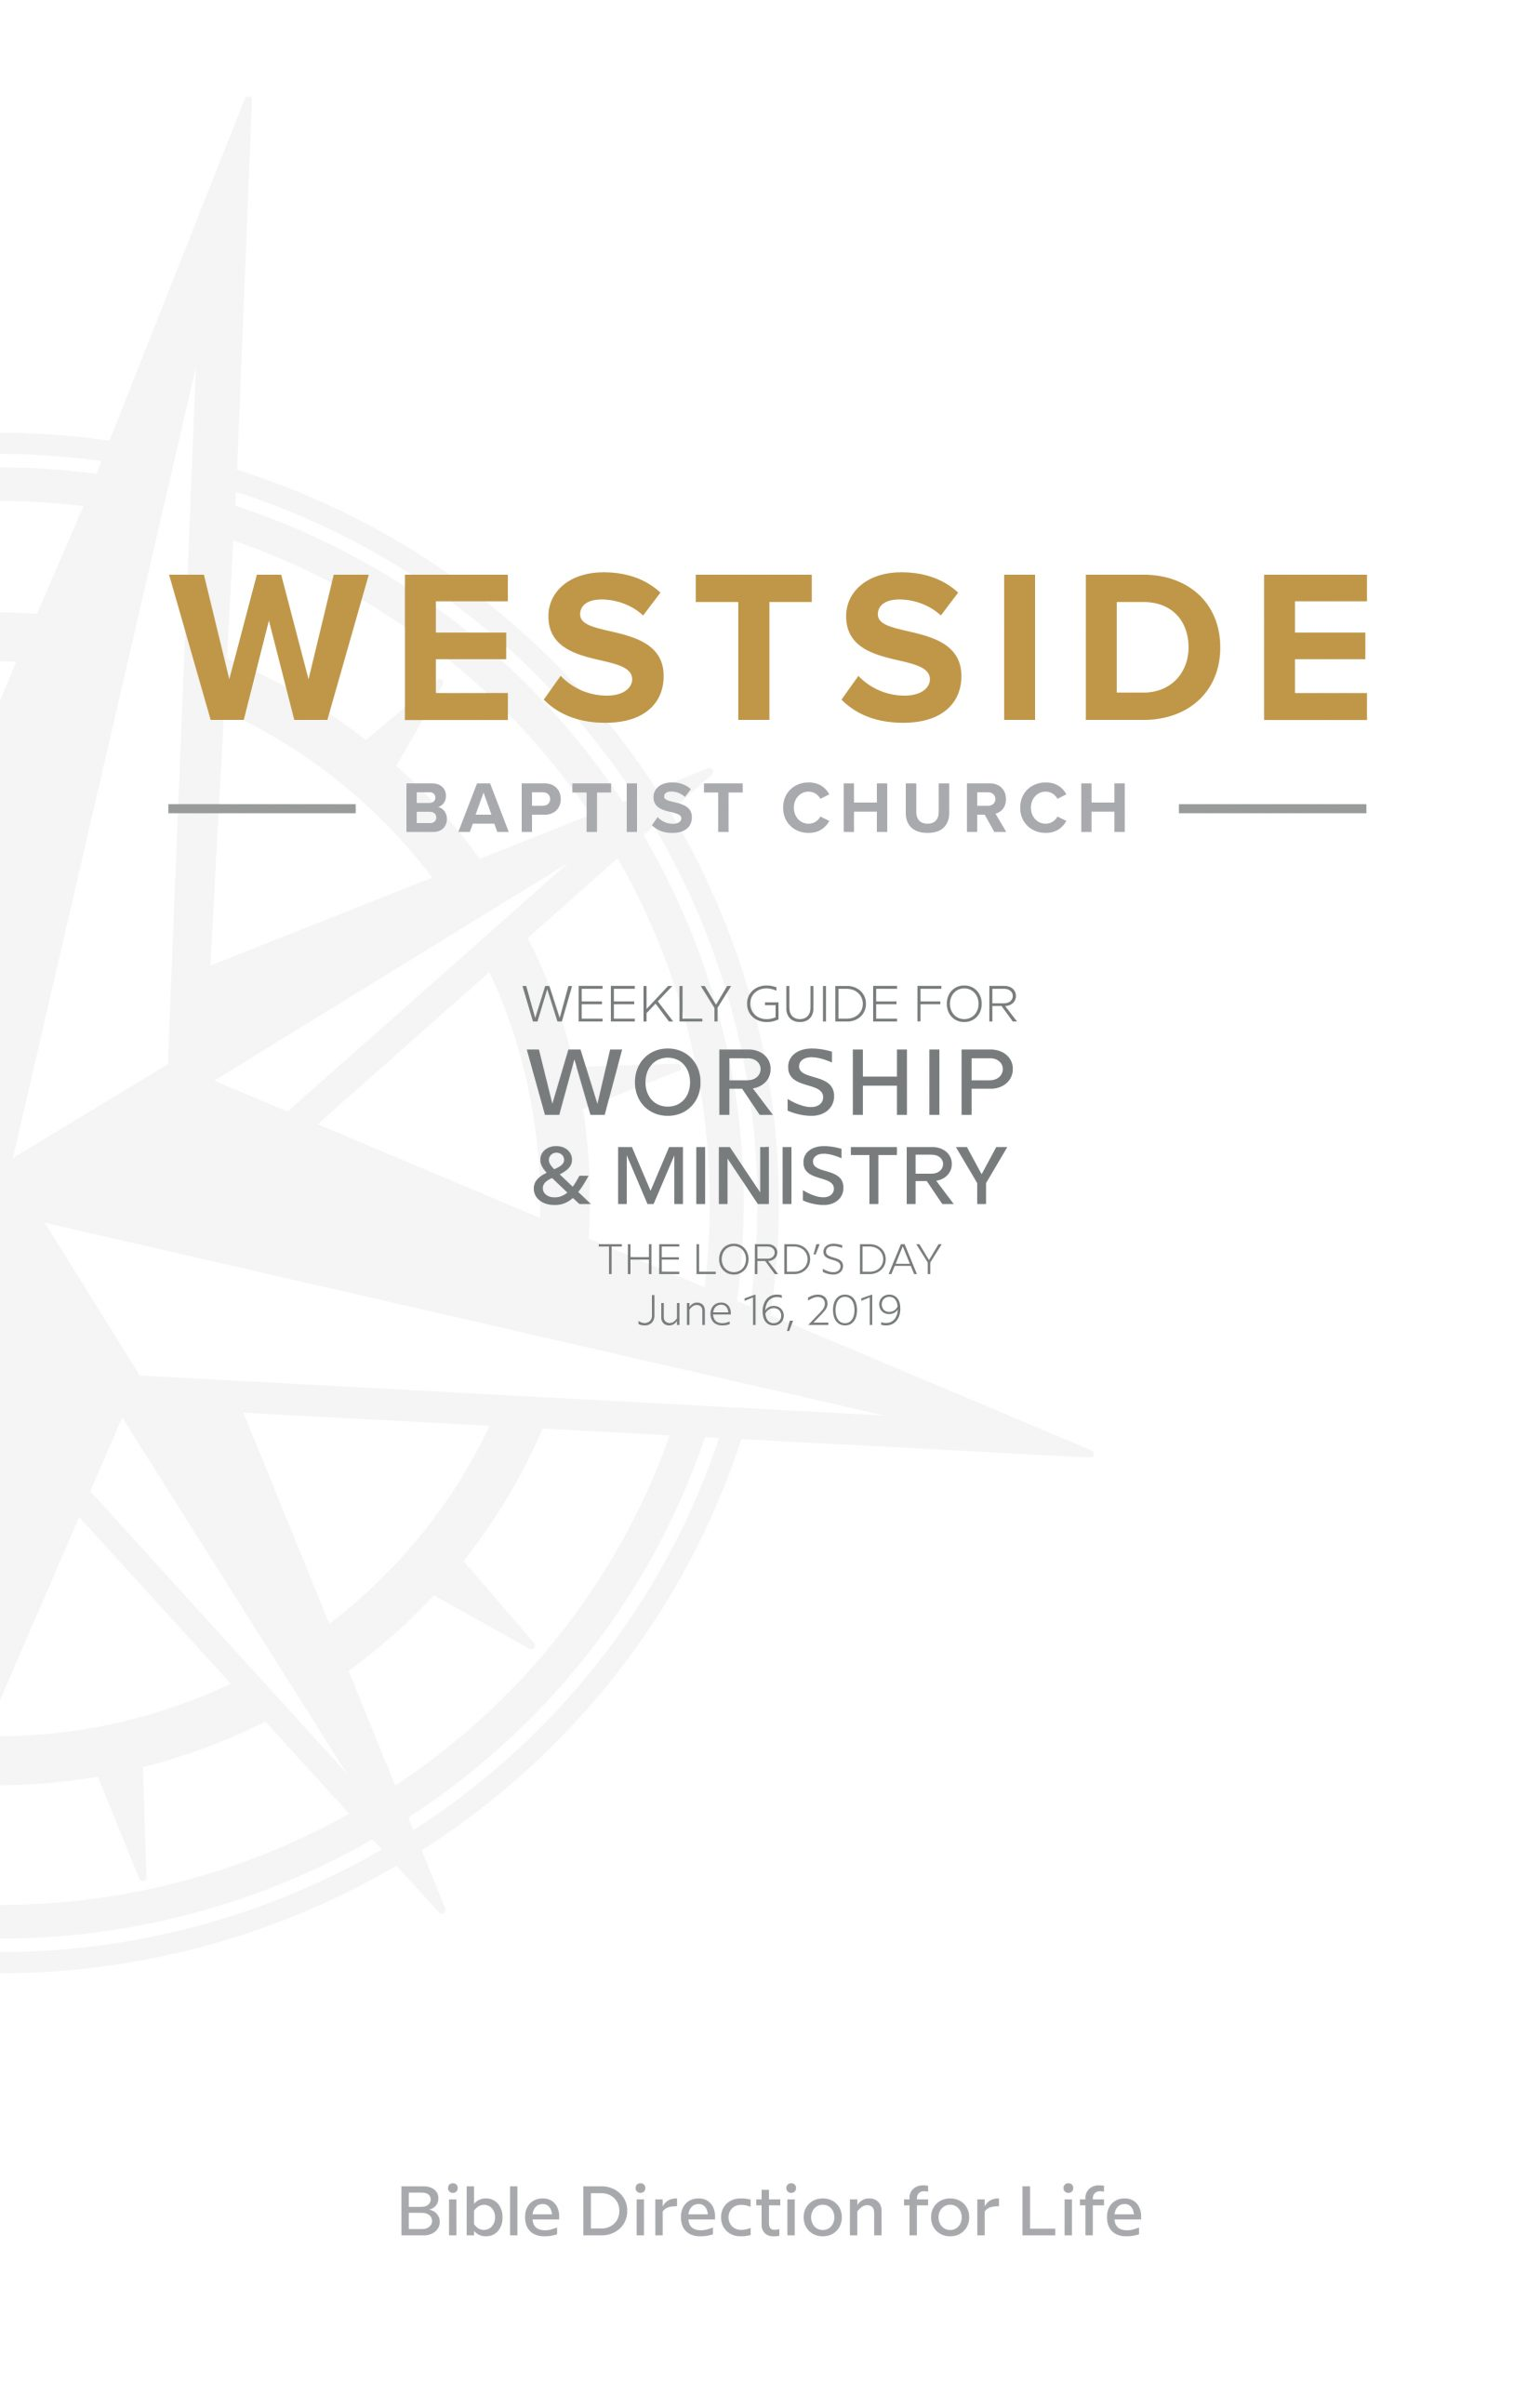 Weekly Guide for Worship and Ministry—June 16